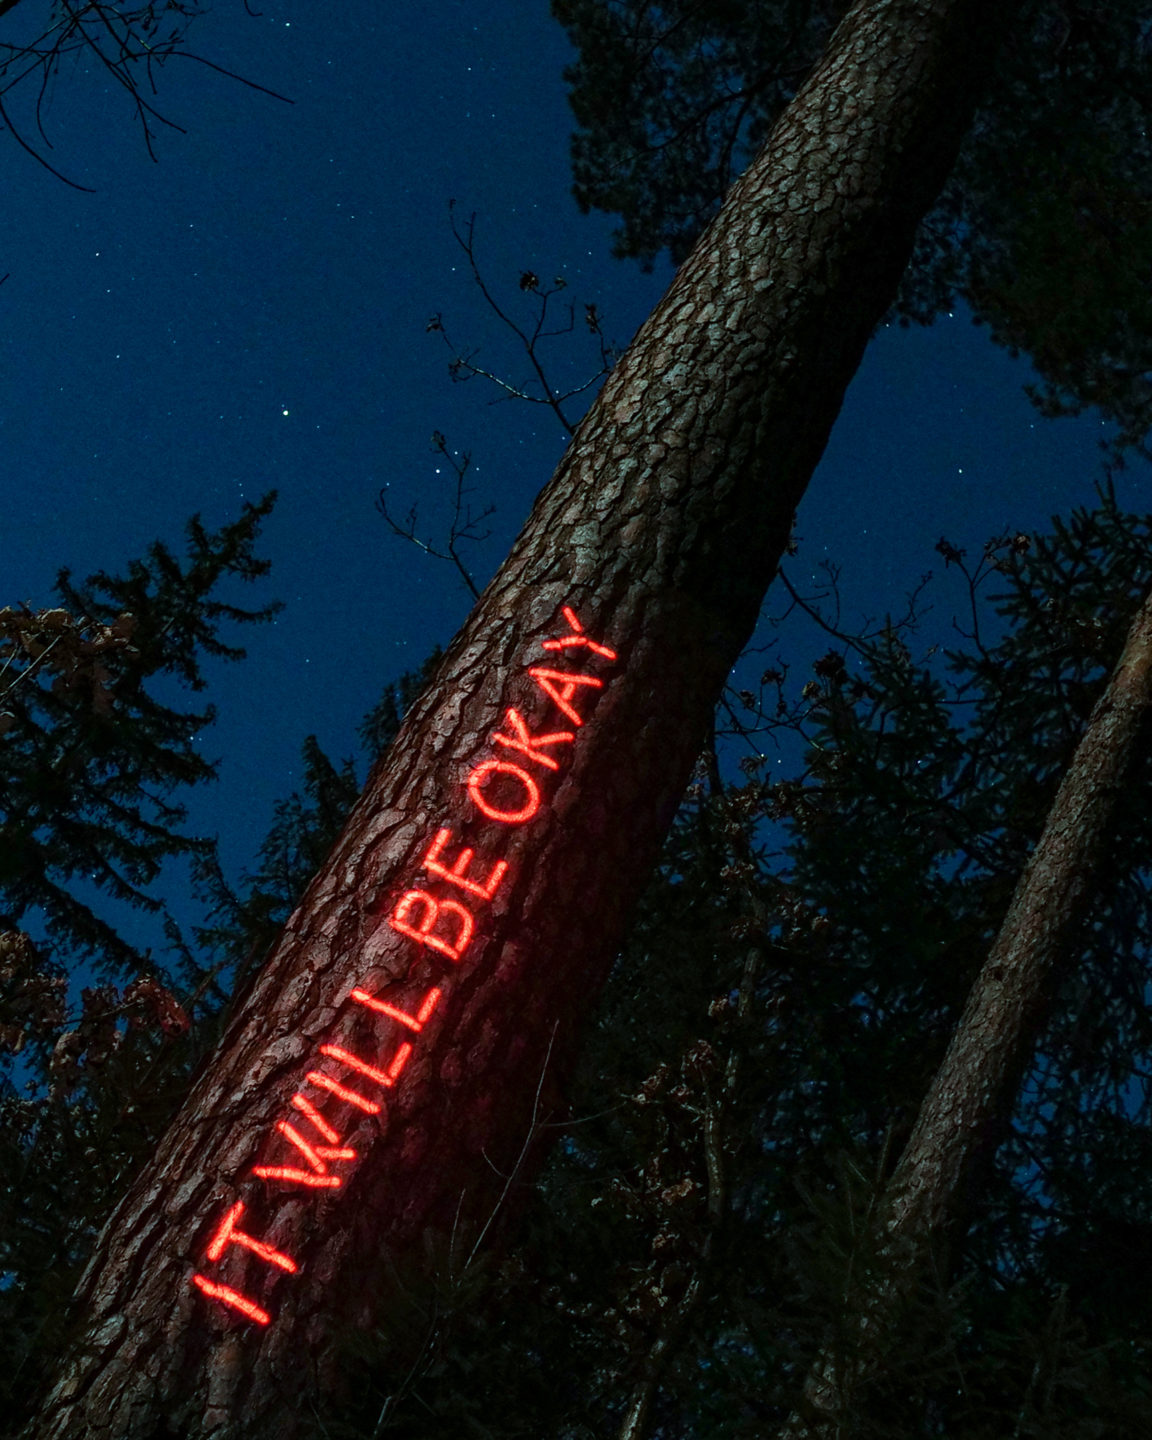 Philipp Frank-Message from the Forest-Neon-light-art-Philipp Frank -artists- künstler - New media - light art - projection - mapping - installation - in  -nature - art -neon,